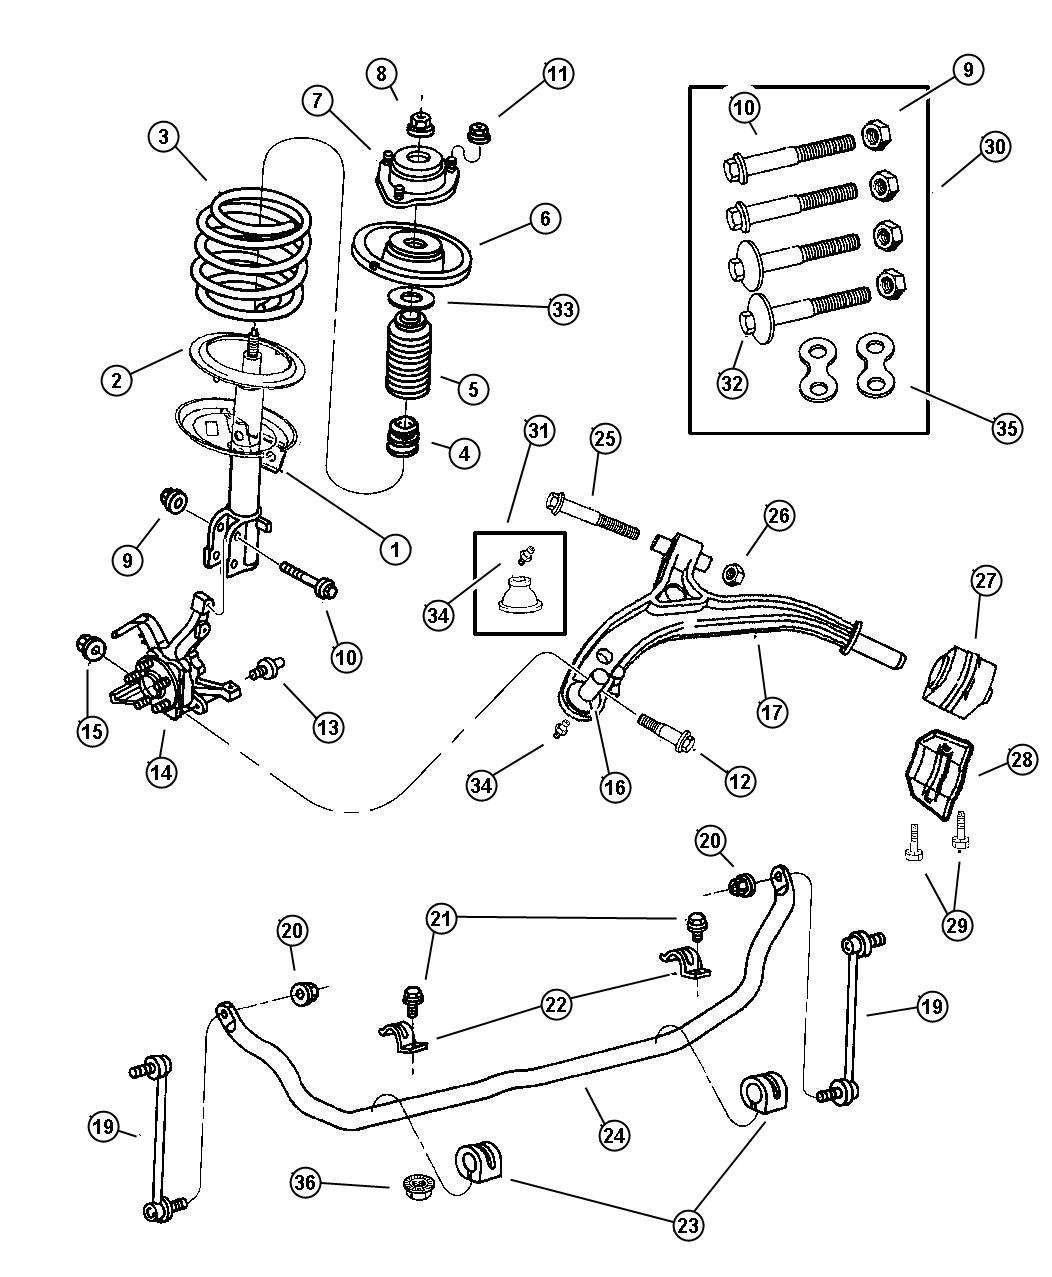 Ram Front Suspension Diagram